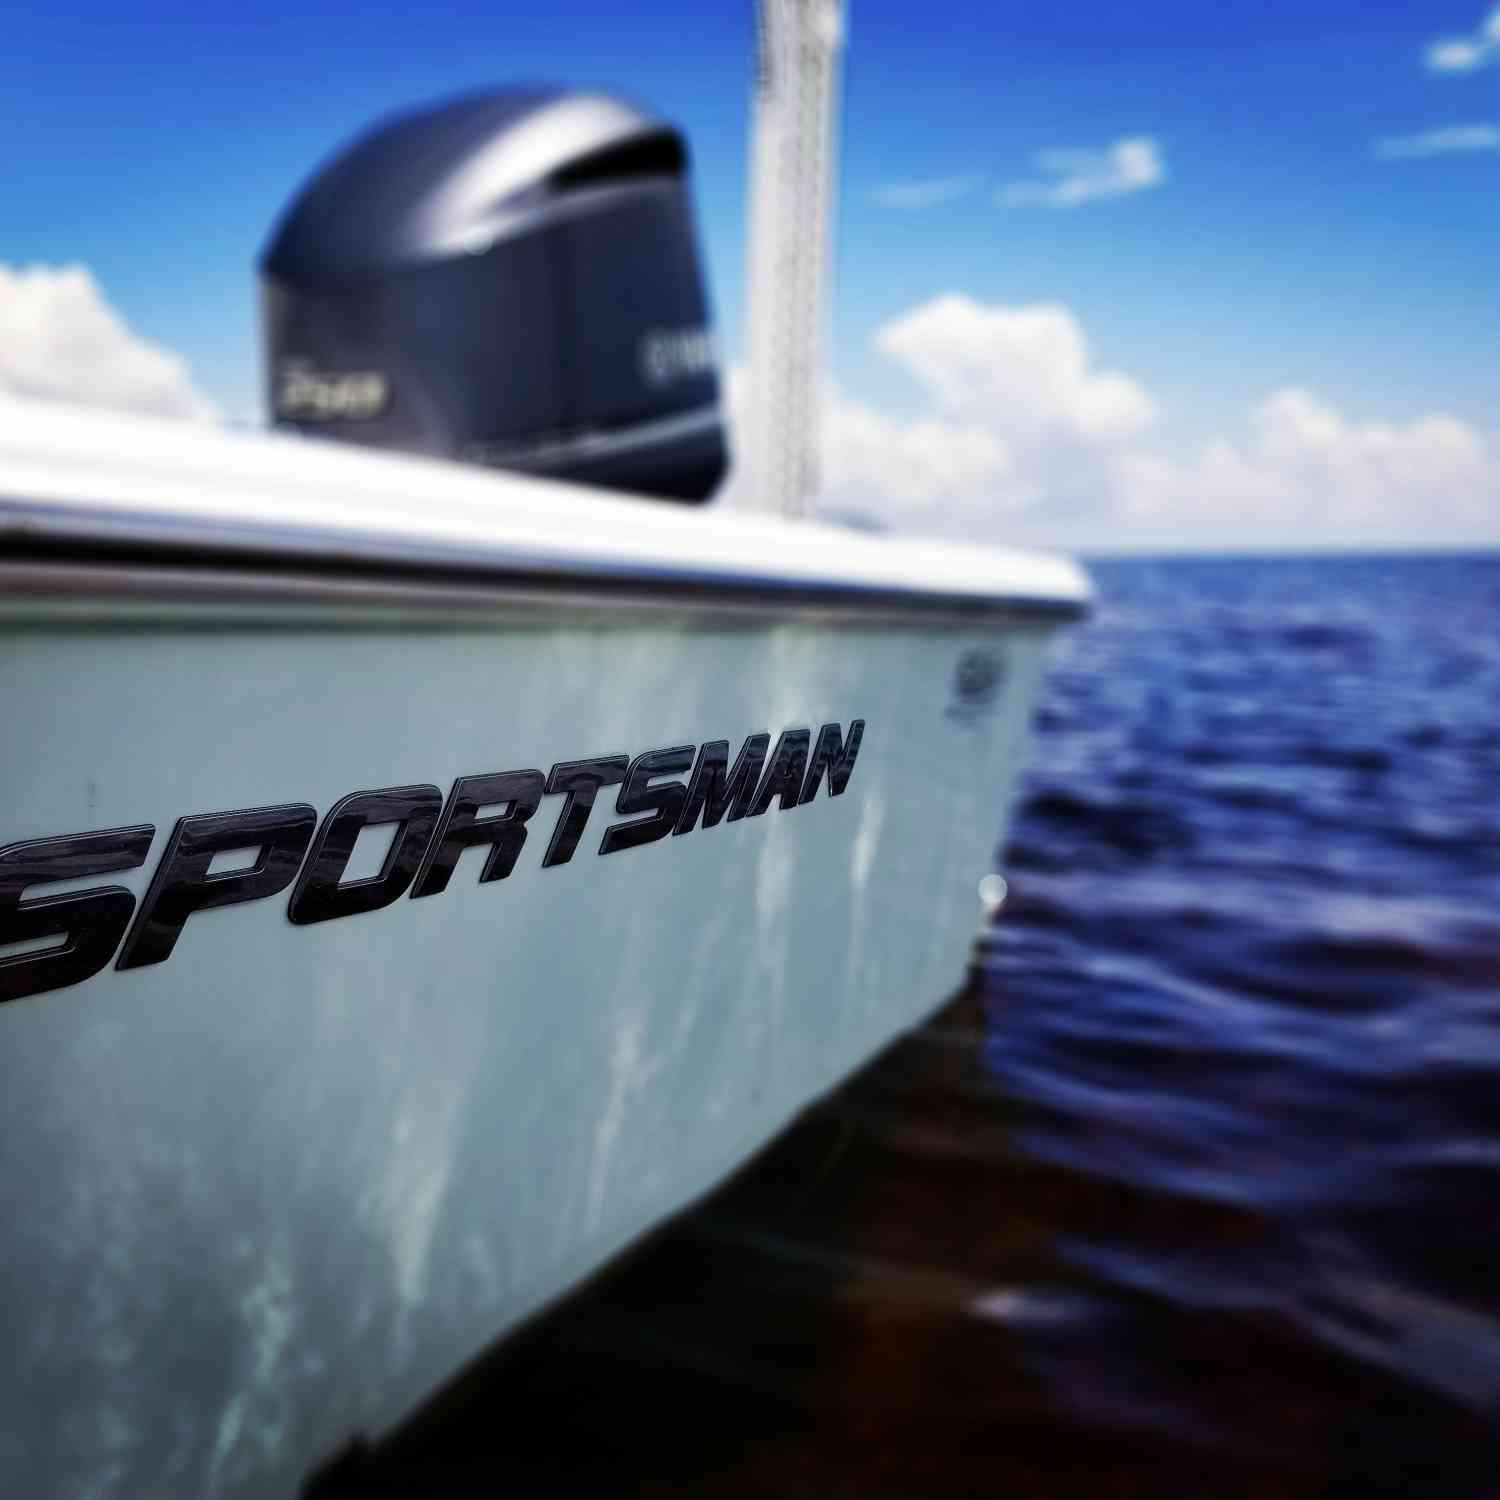 Title: If it's not a Sportsman, it's a blur. - On board their Sportsman Masters 247 Bay Boat - Location: St. Mark's, Florida. Participating in the Photo Contest #SportsmanAugust2018